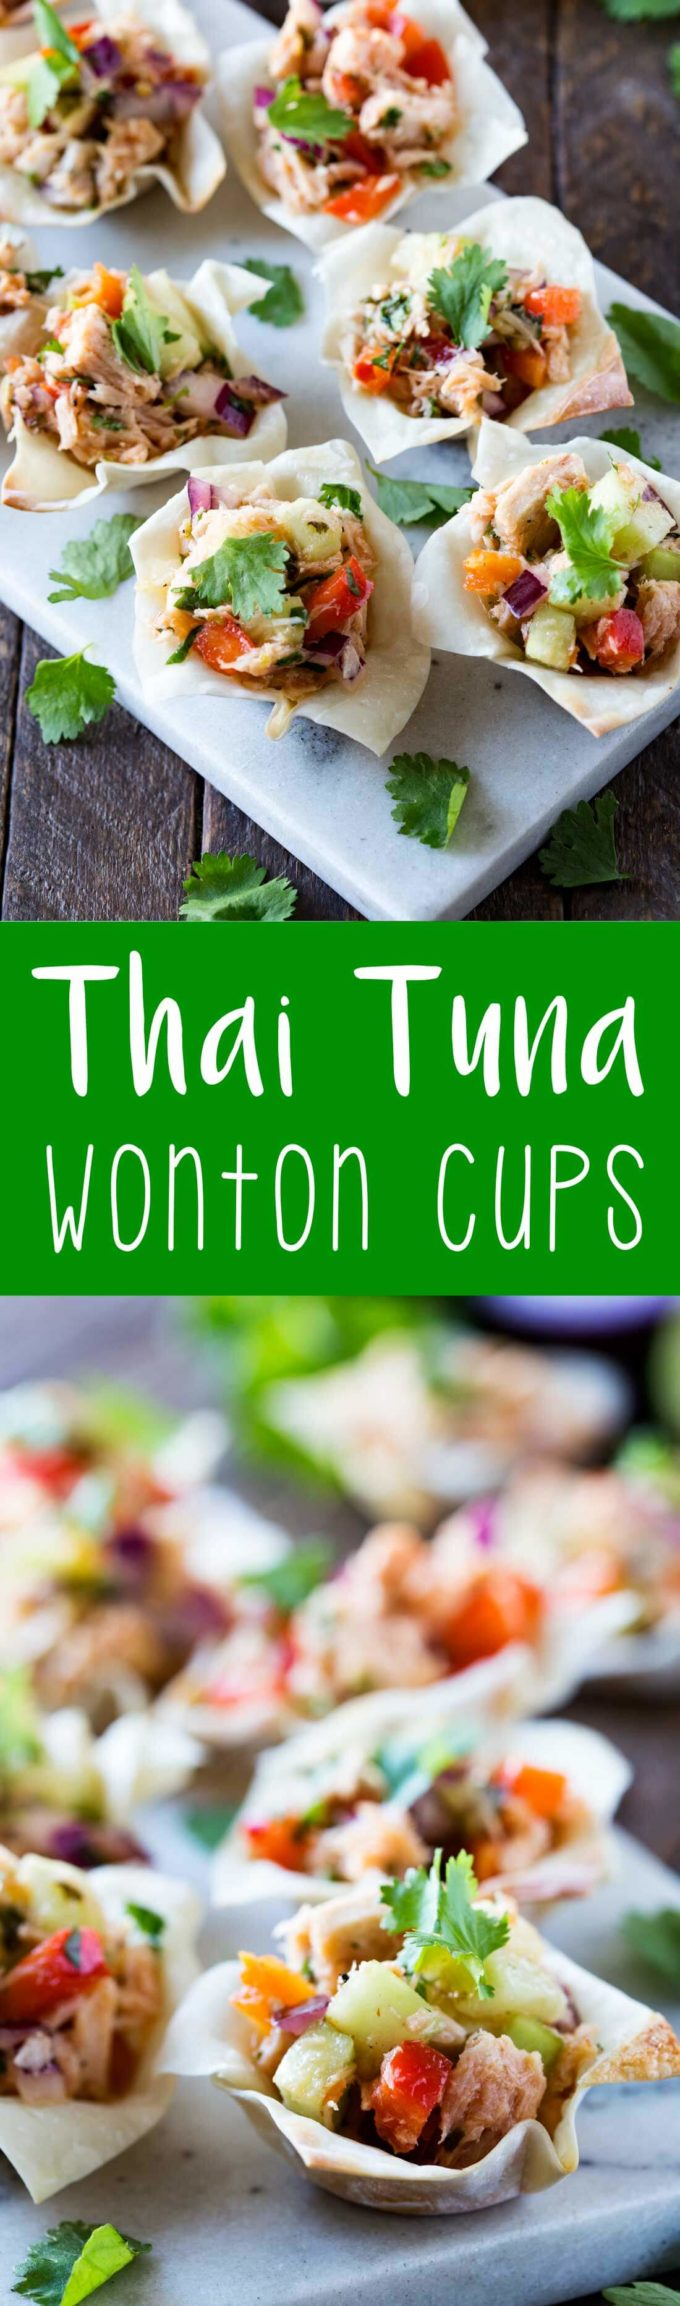 Thai Tuna Wonton Cups are a savory Thai inspired appetizer that is a great source of protein and absolutely delicious.